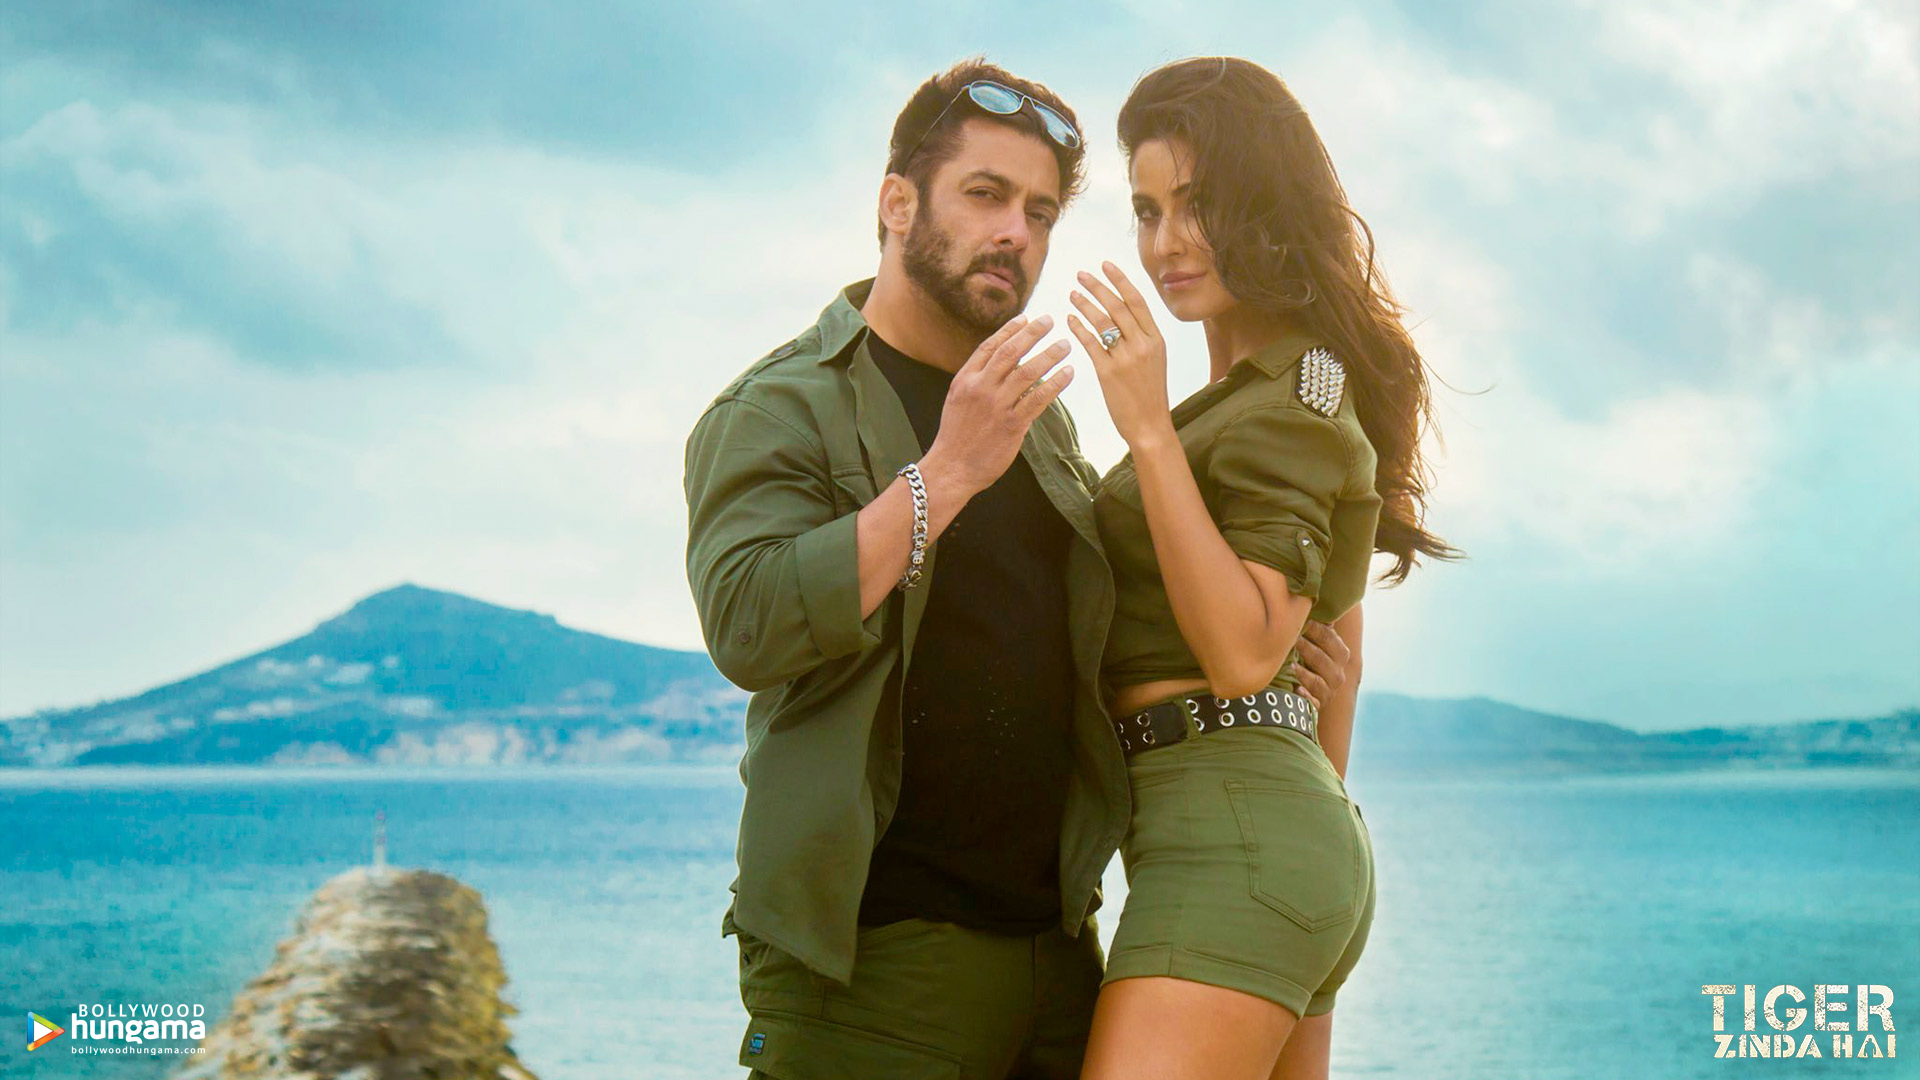 Tiger Zinda Hai 2017 Wallpapers